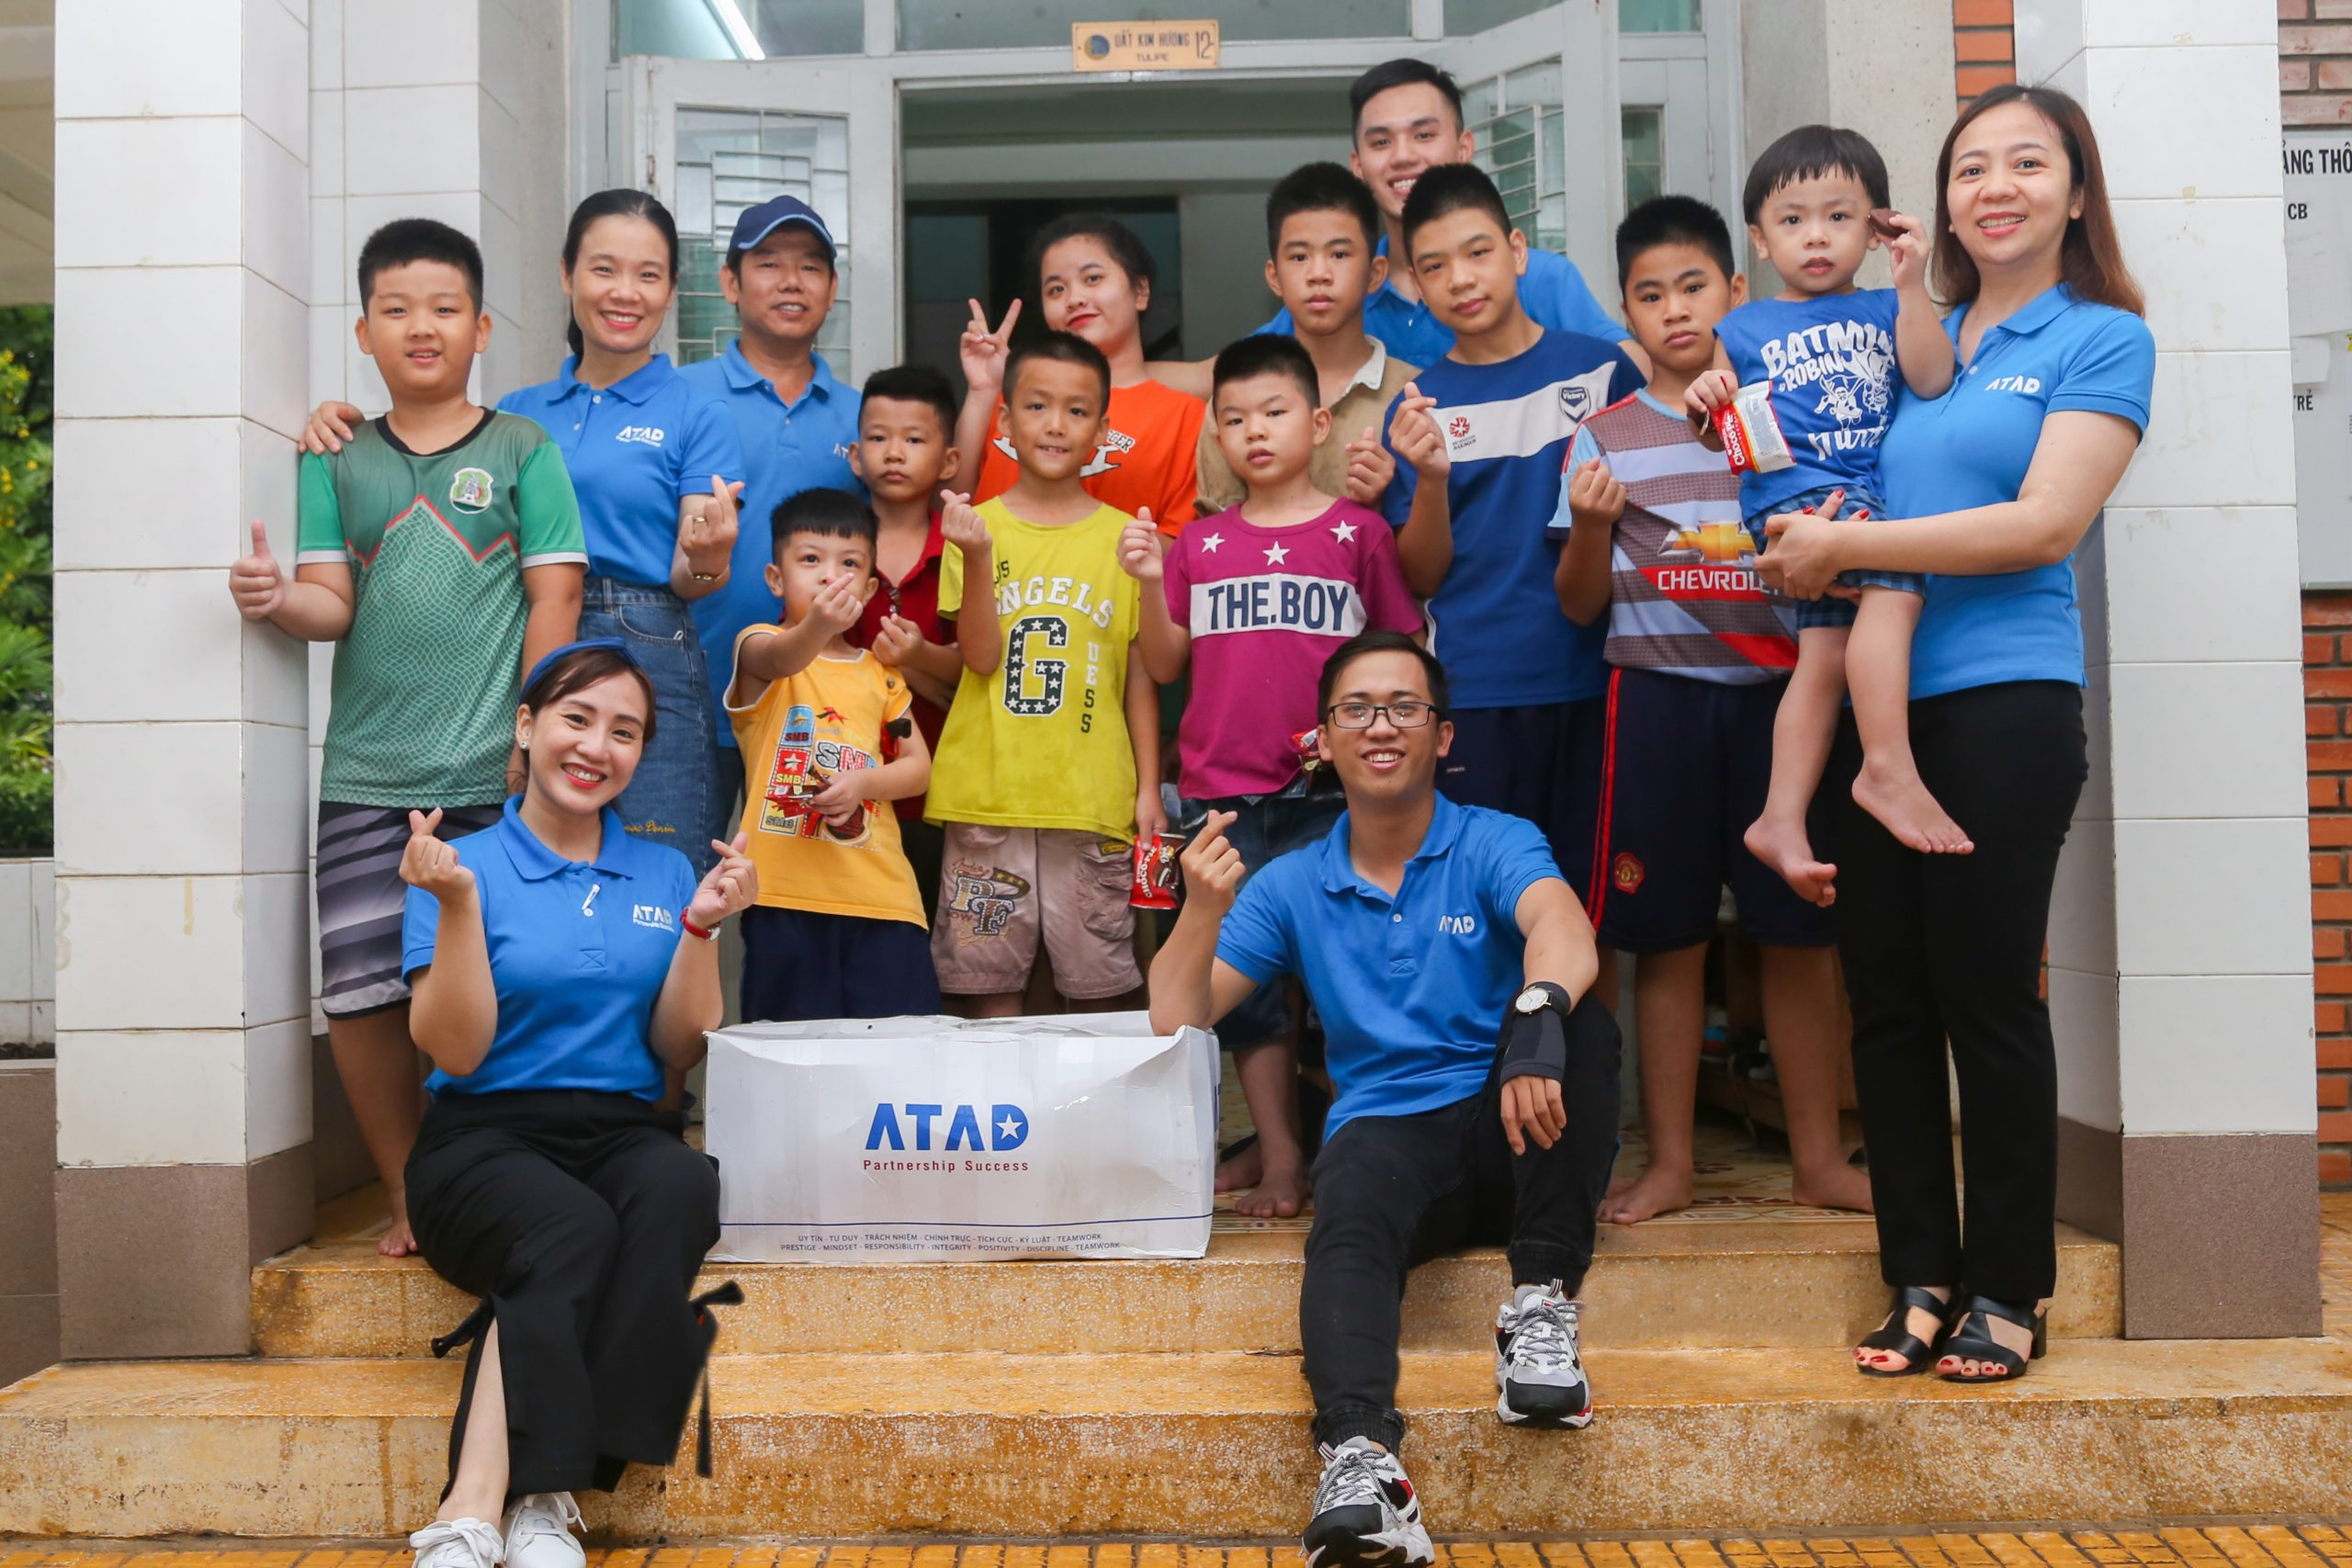 ATAD members  actively participated in charity and volunteering activities